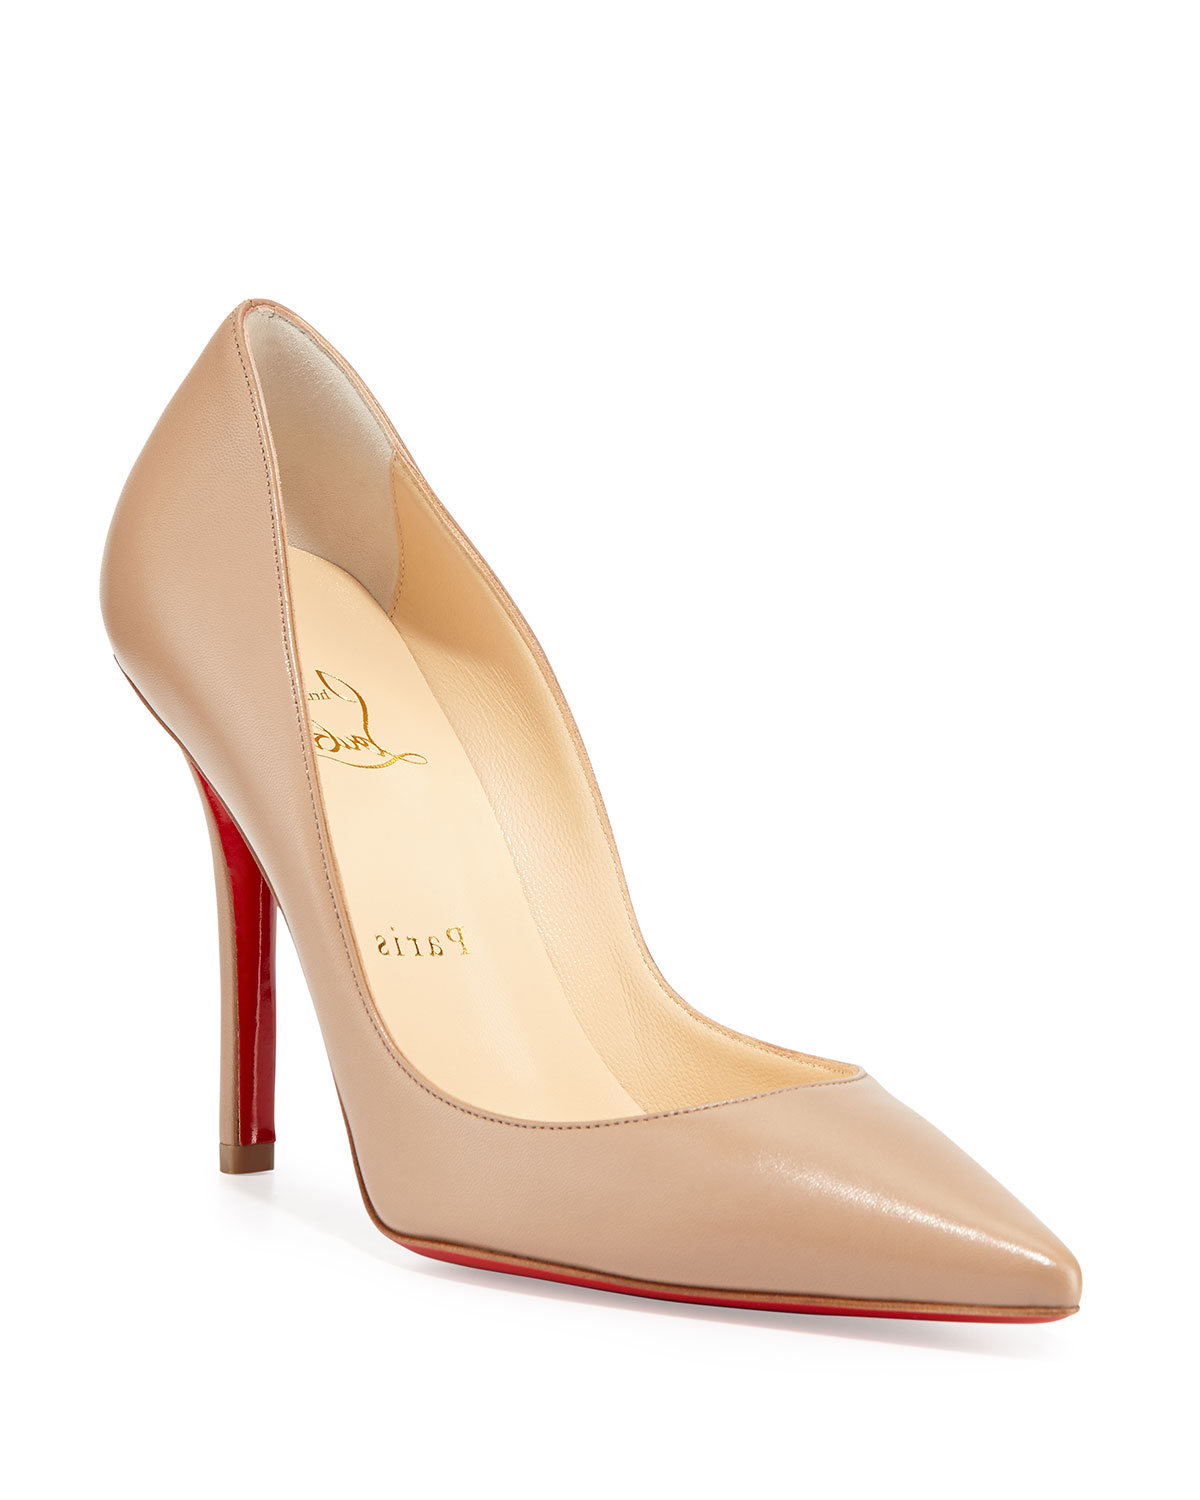 Apostrophy Pointed Red Sole Pump